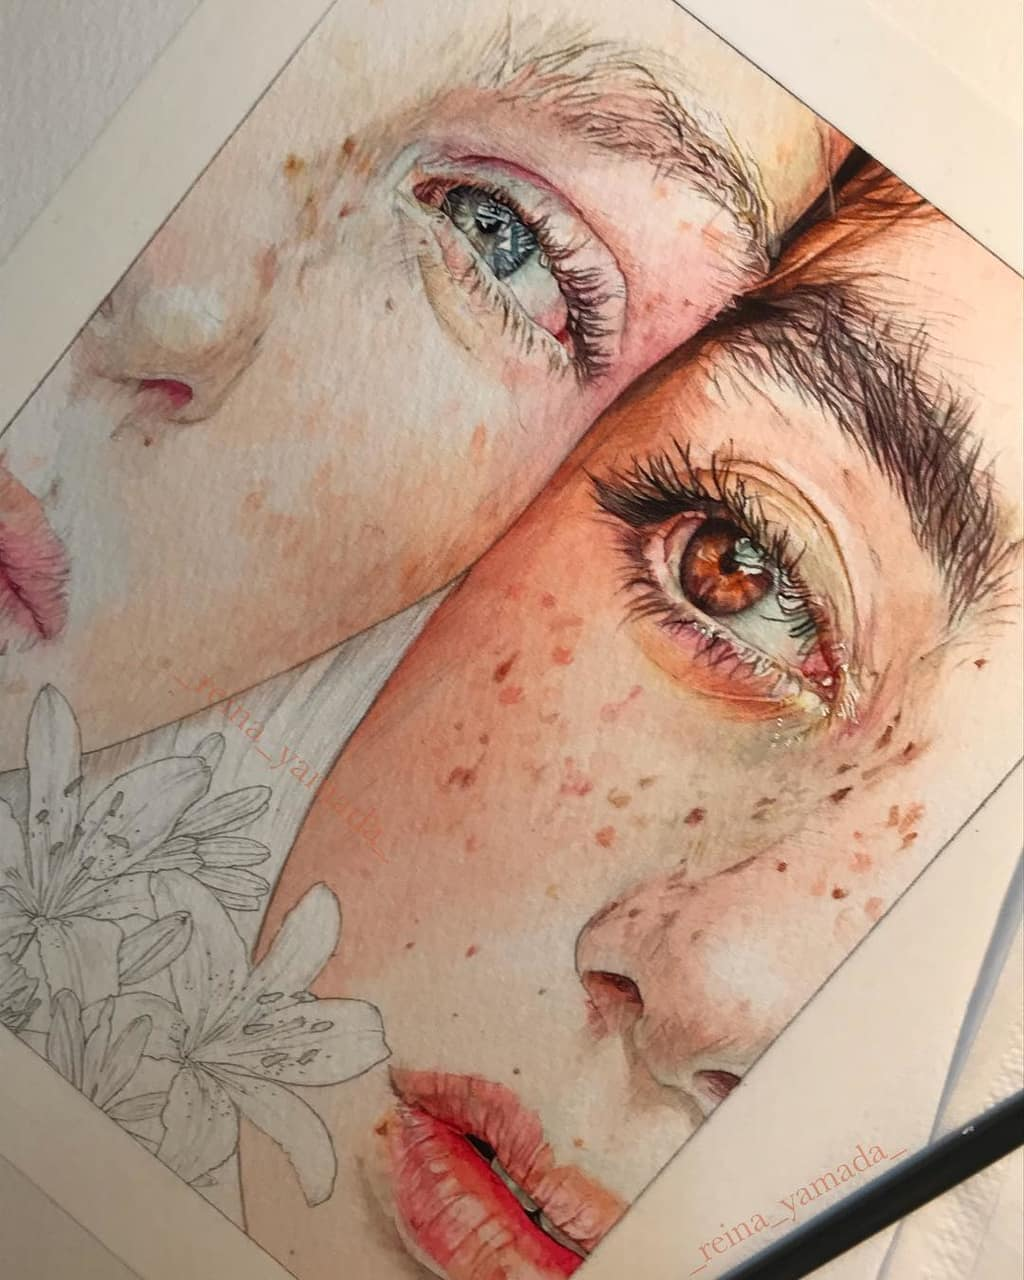 Body Parts Art Drawing And Painting Image 6639621 On Favim Com